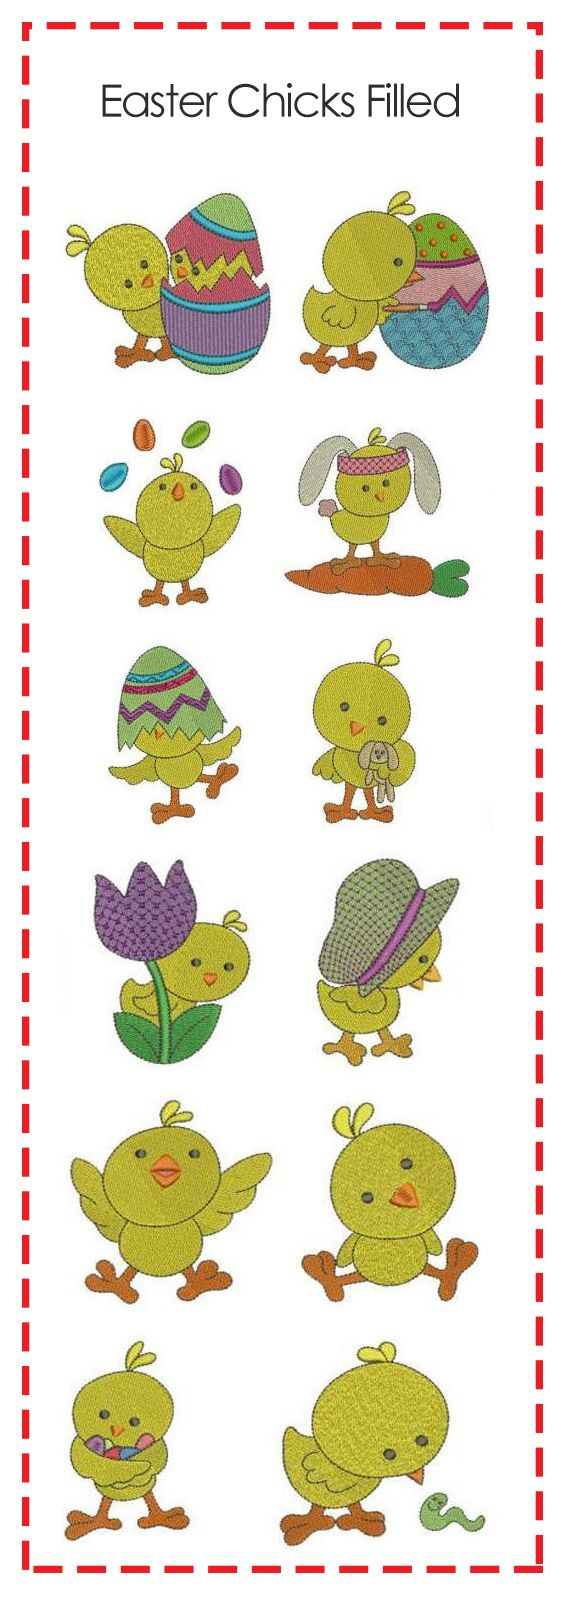 12 ADORABLE Easter chicks for your Spring and Easter projects || Little Easter Chickies filled #DesignsbyJuJu